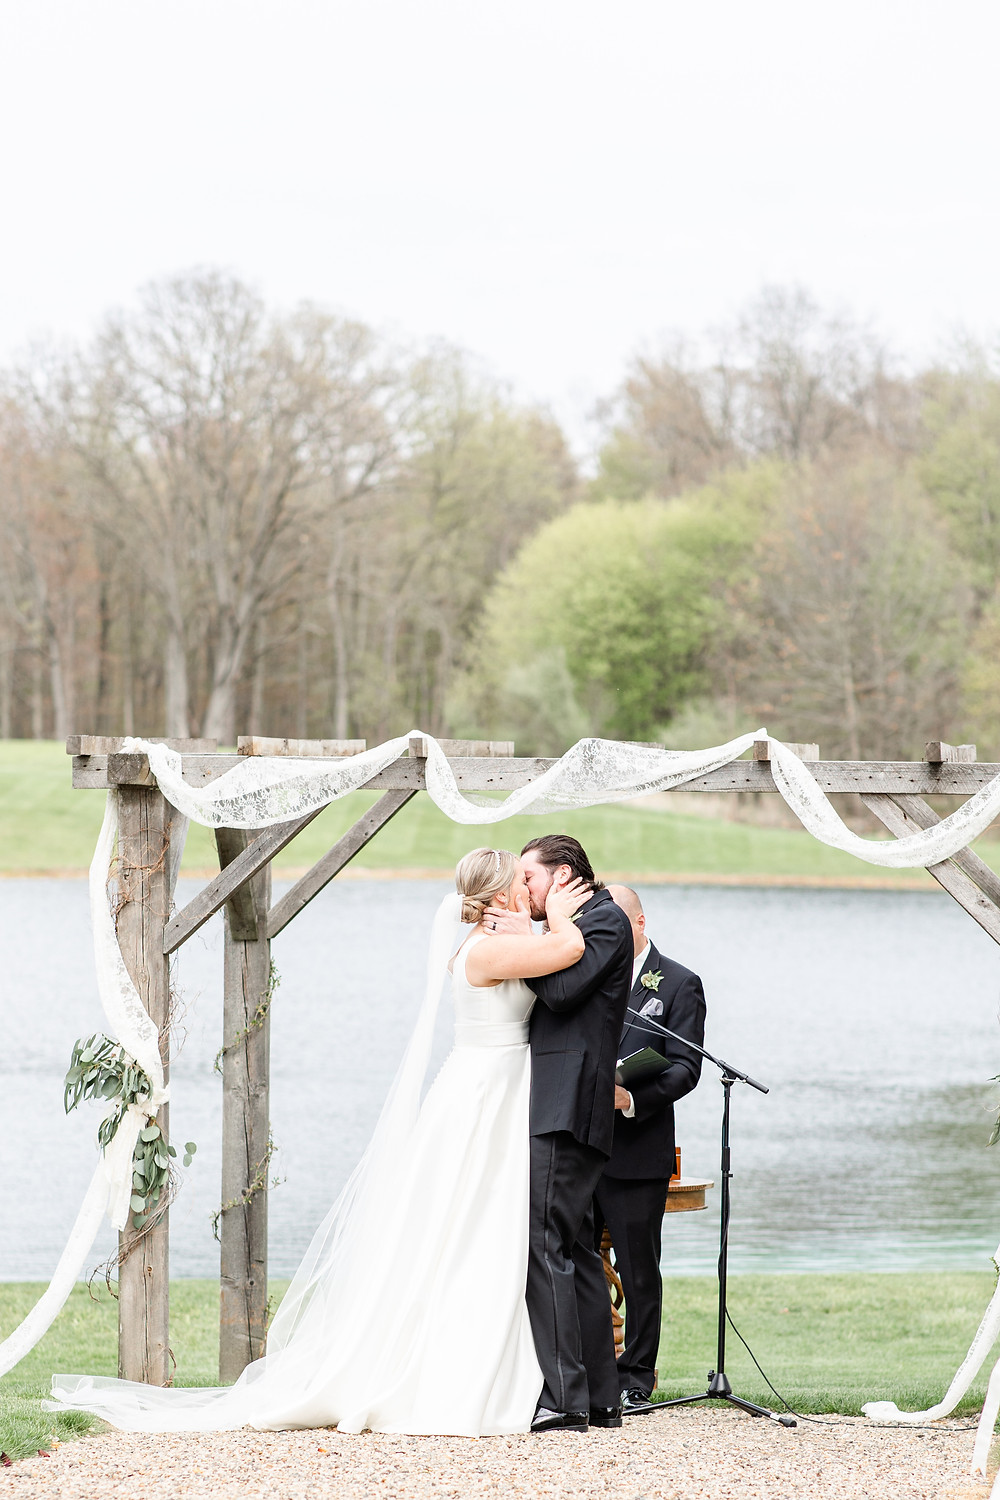 Josh and Andrea wedding photography husband and wife photographer team michigan Black Barn Wedding Venue rives junction spring bride and groom first kiss ceremony